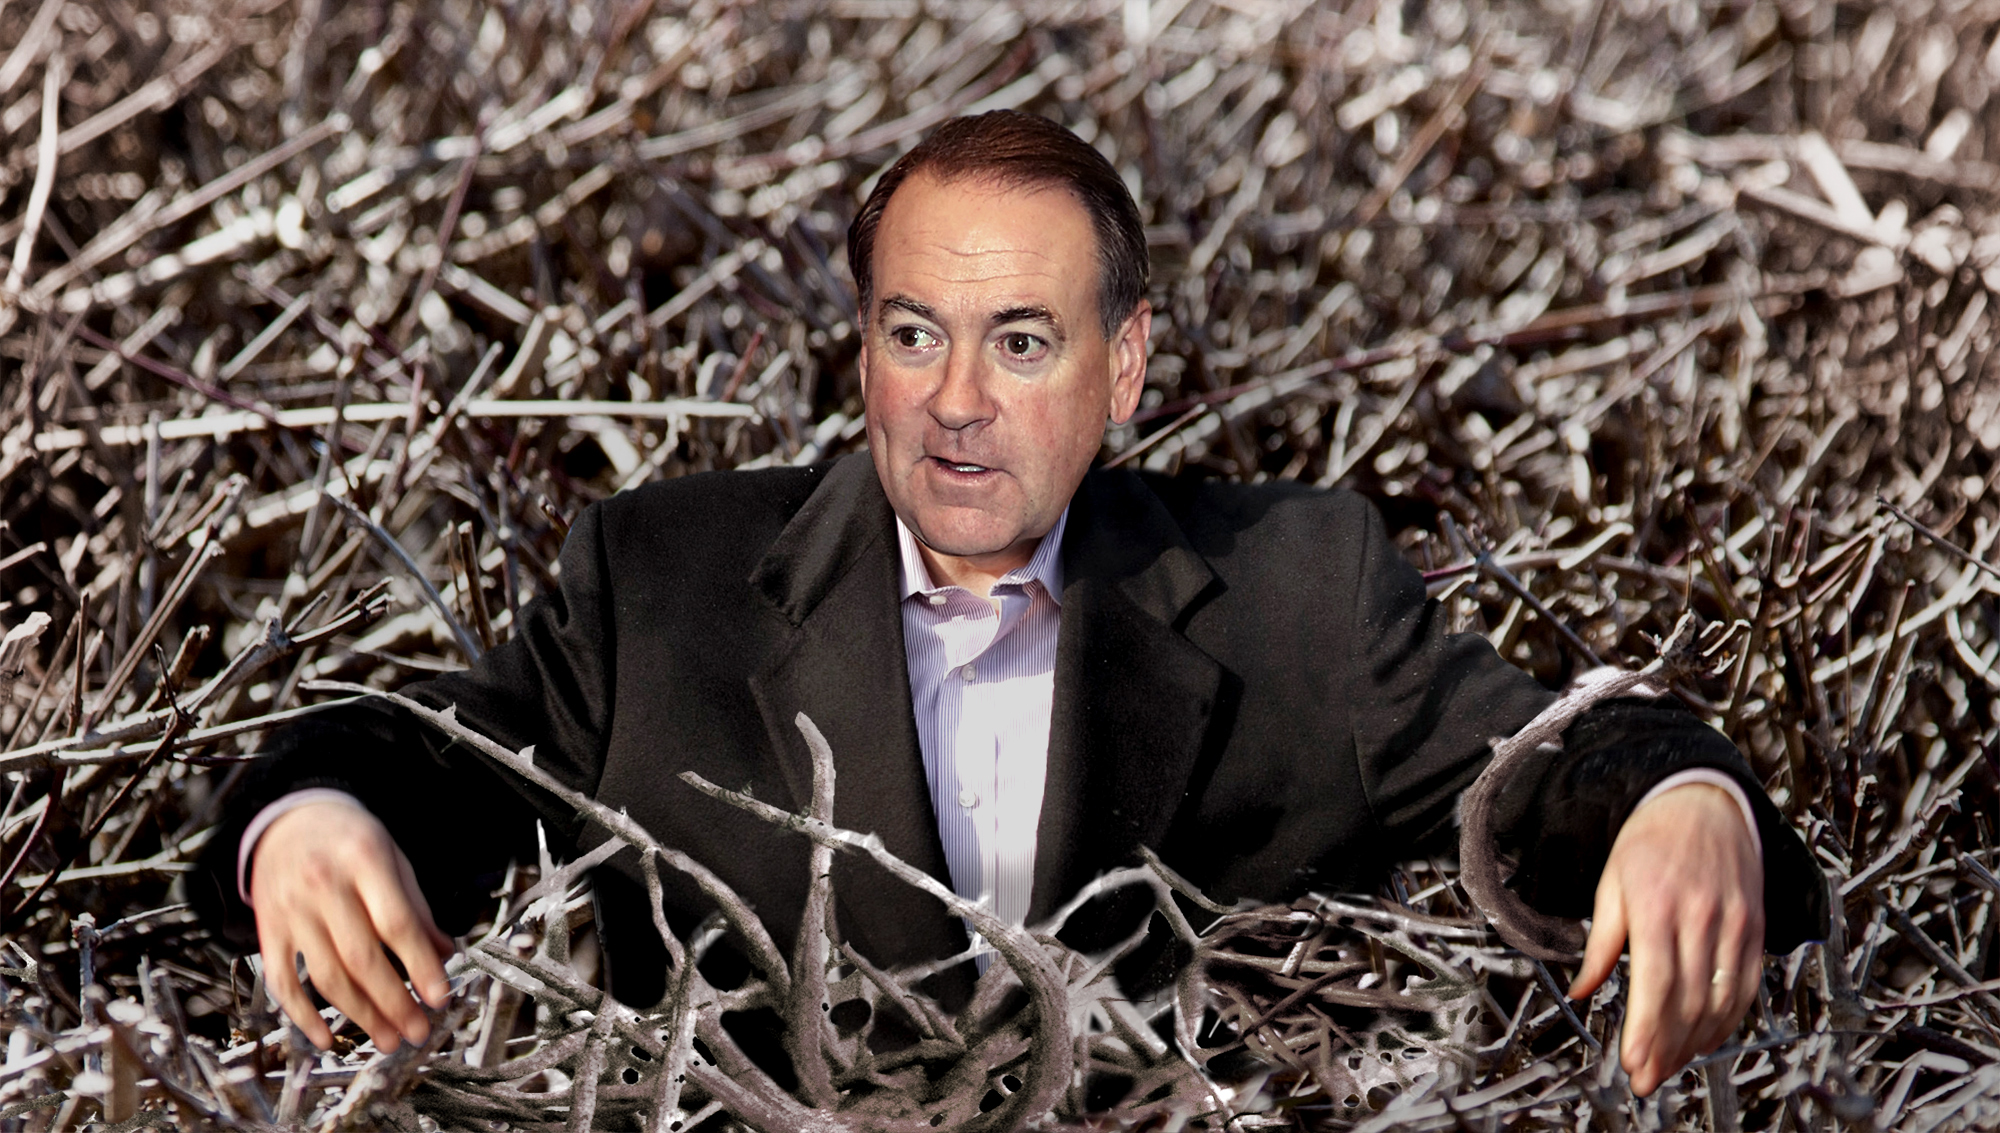 Huckabee Campaign Suspended After Candidate Trapped In Briar Patch                               August 14, 2015